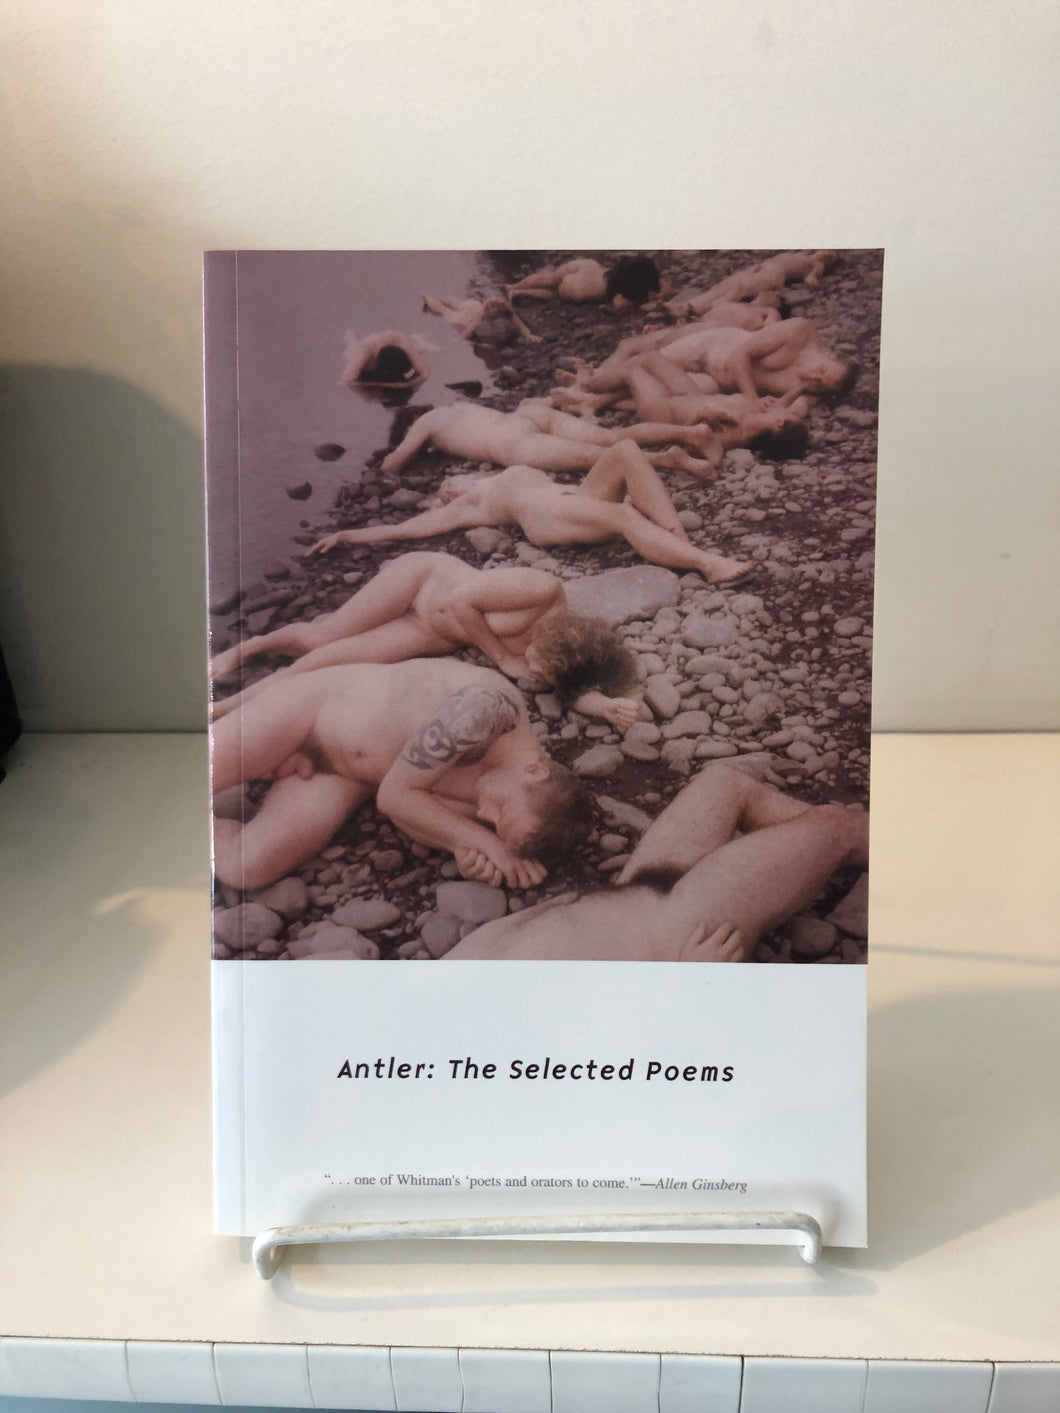 Antler: The Selected Poems